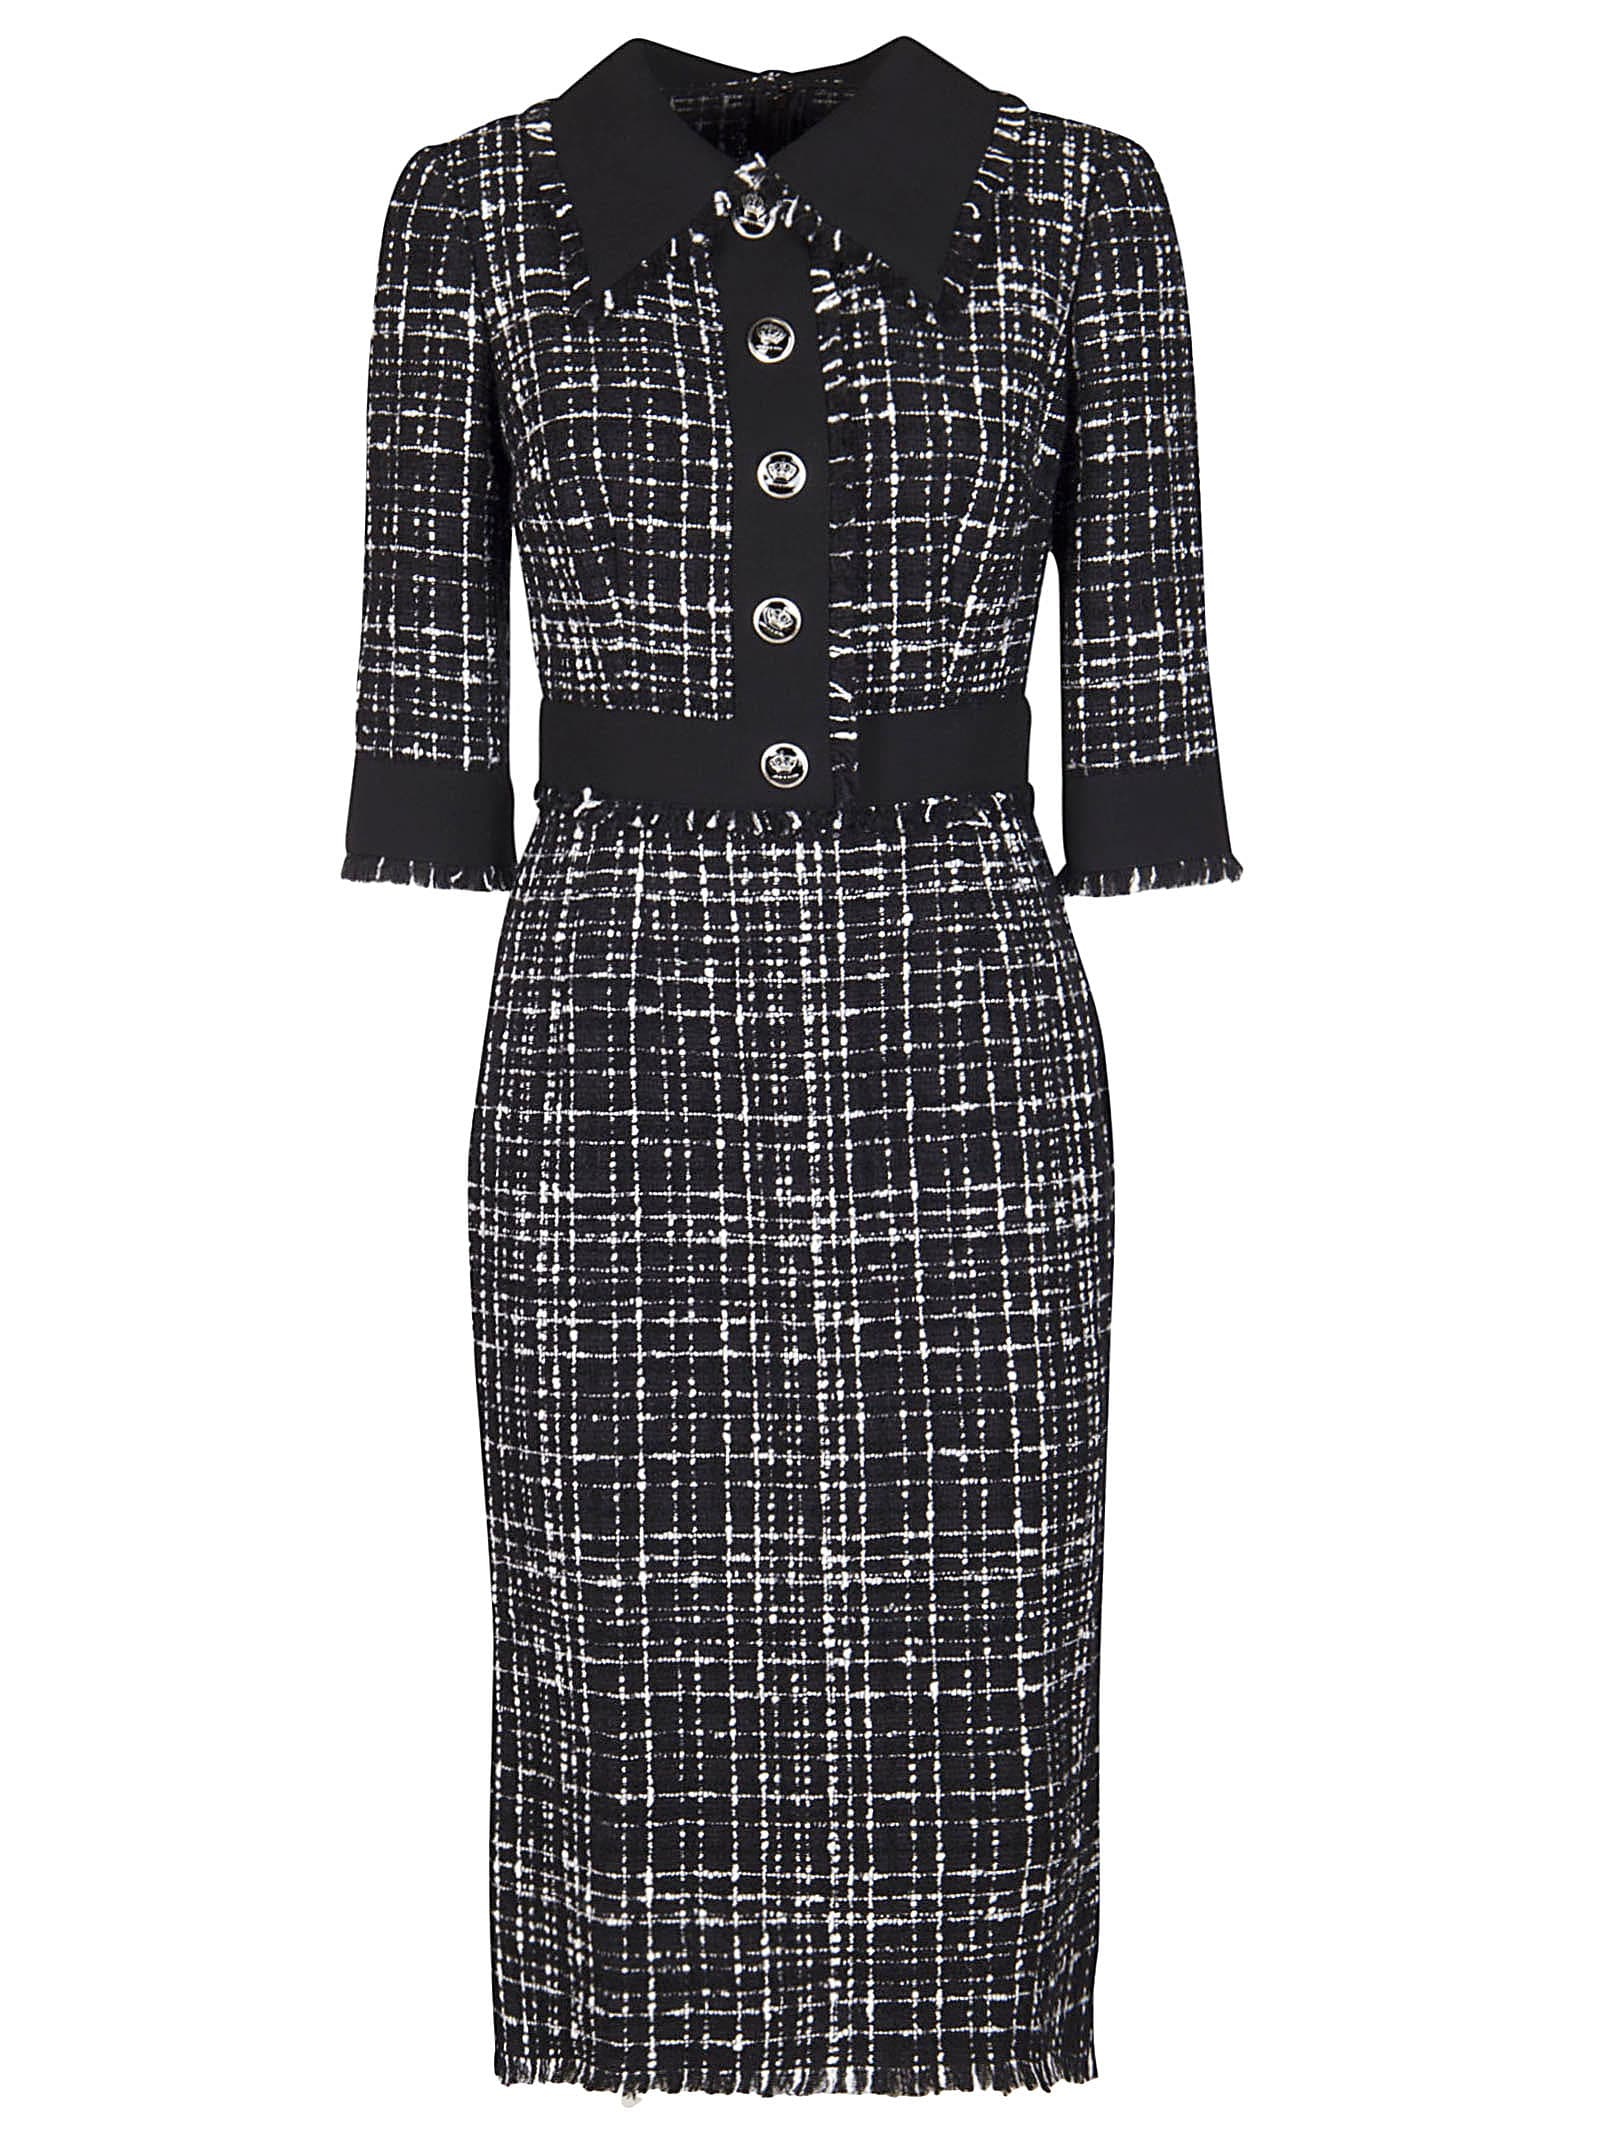 Buy Black And Grey Cotton-wool Blend Dress online, shop Dolce & Gabbana with free shipping